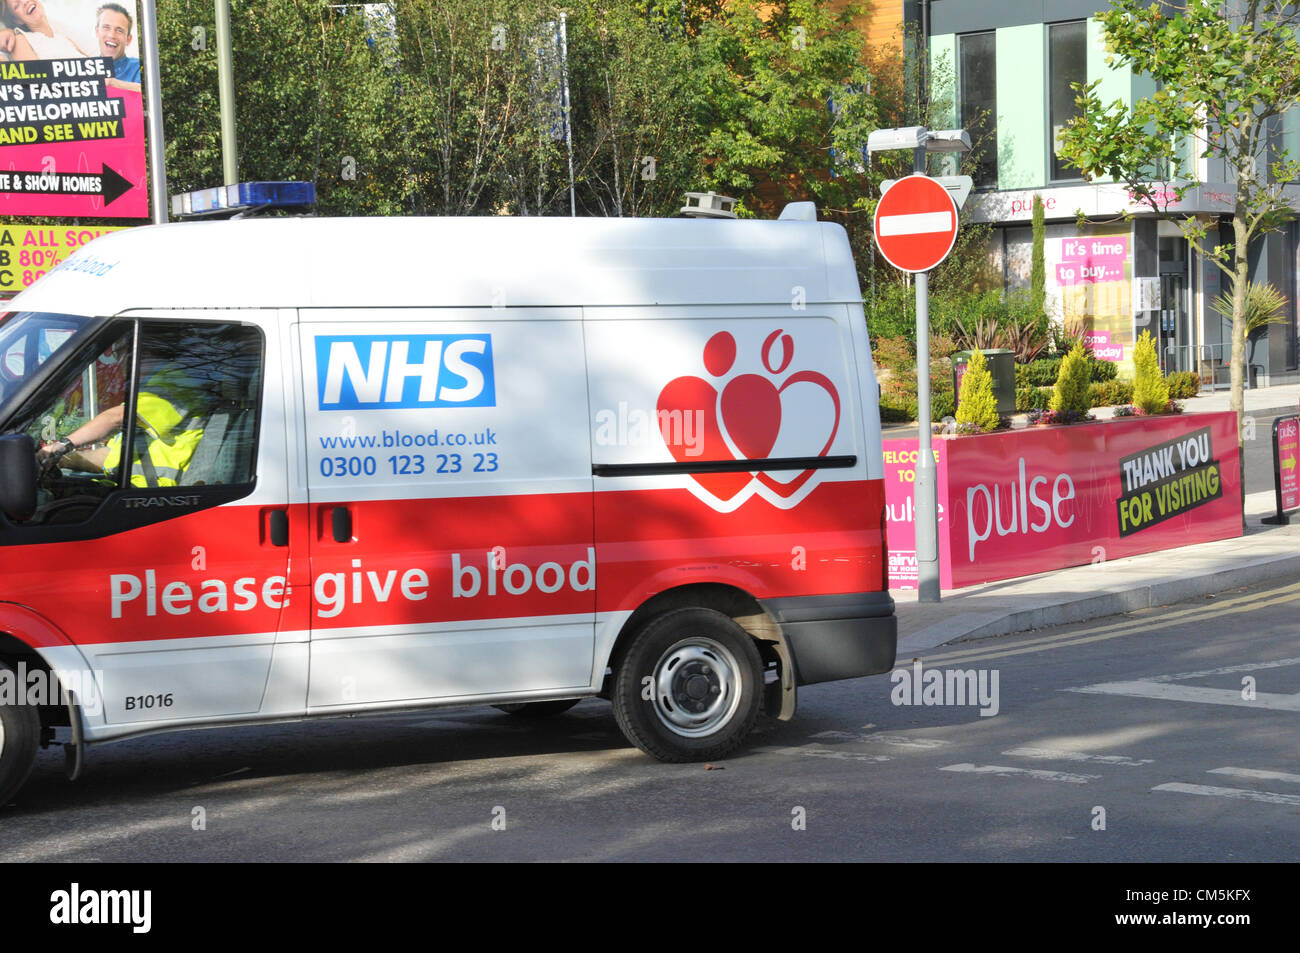 Colindale, London, UK.  10th October 2012. A Blood delivery van leaves the main road that leads to the NHS centre. - Stock Image